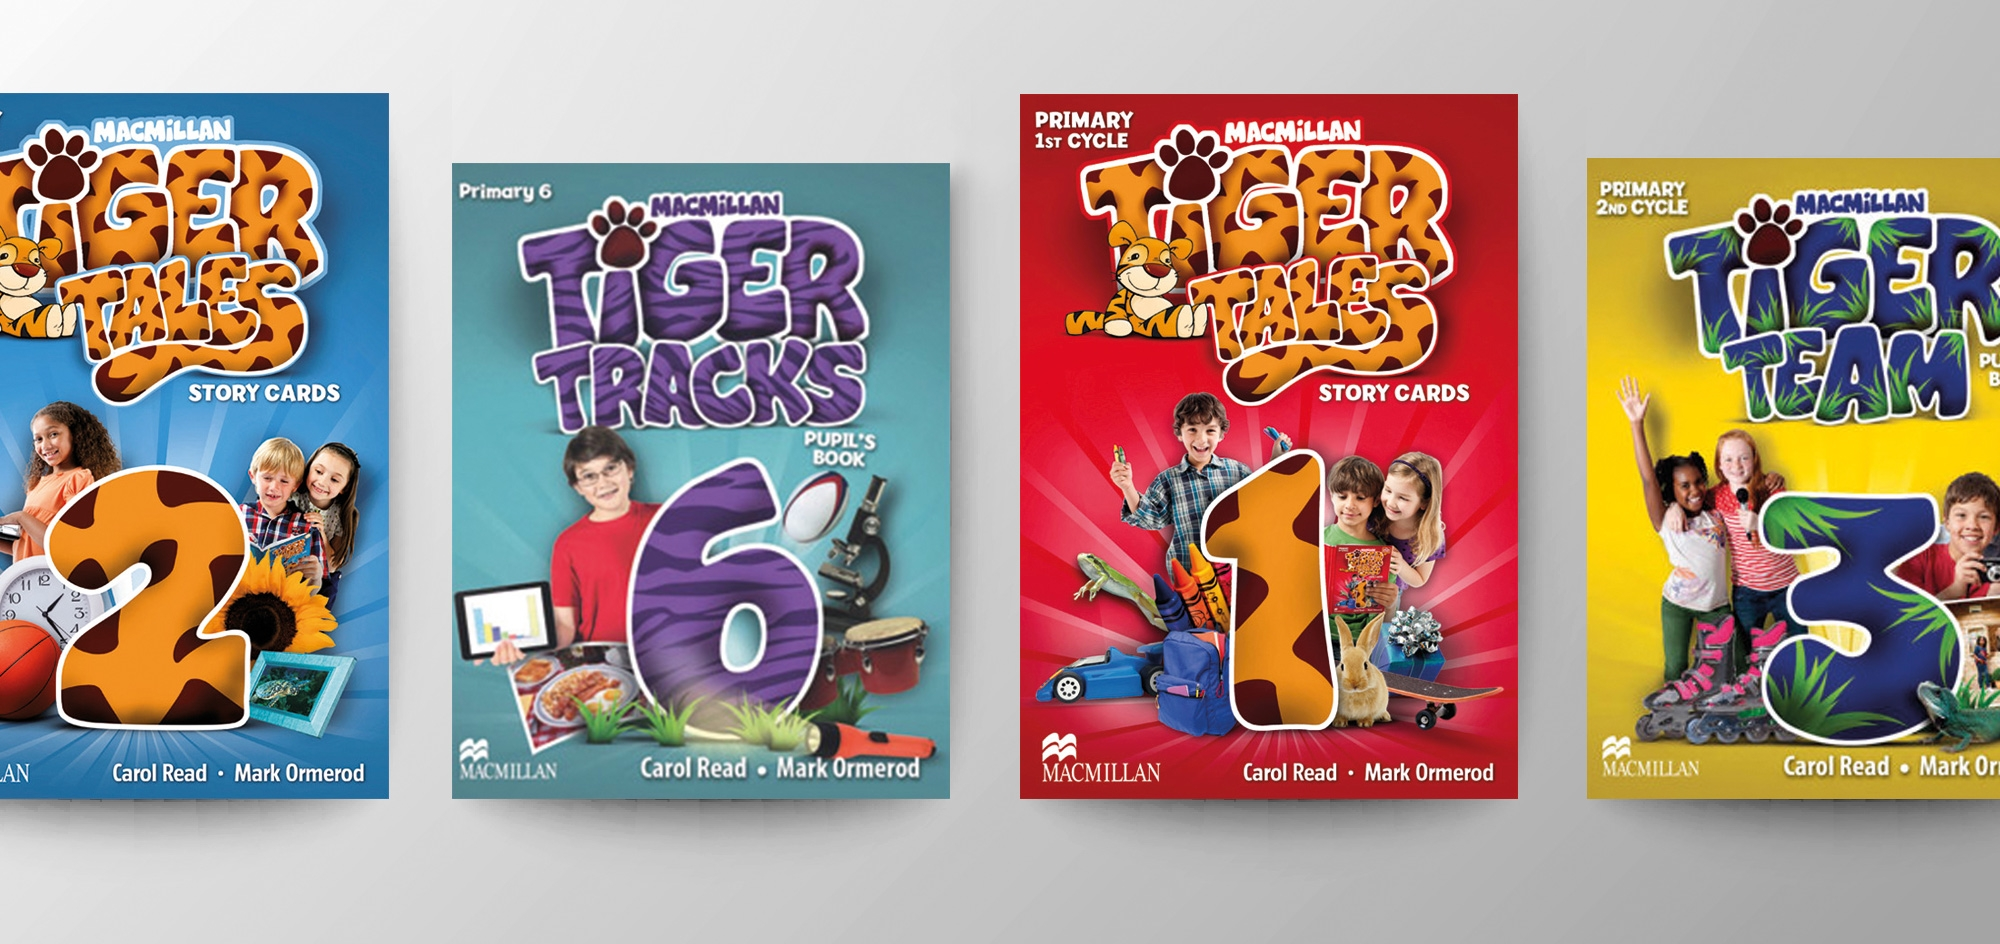 Blooberry Design, Macmillan Tiger Tales book covers. Publishing design.